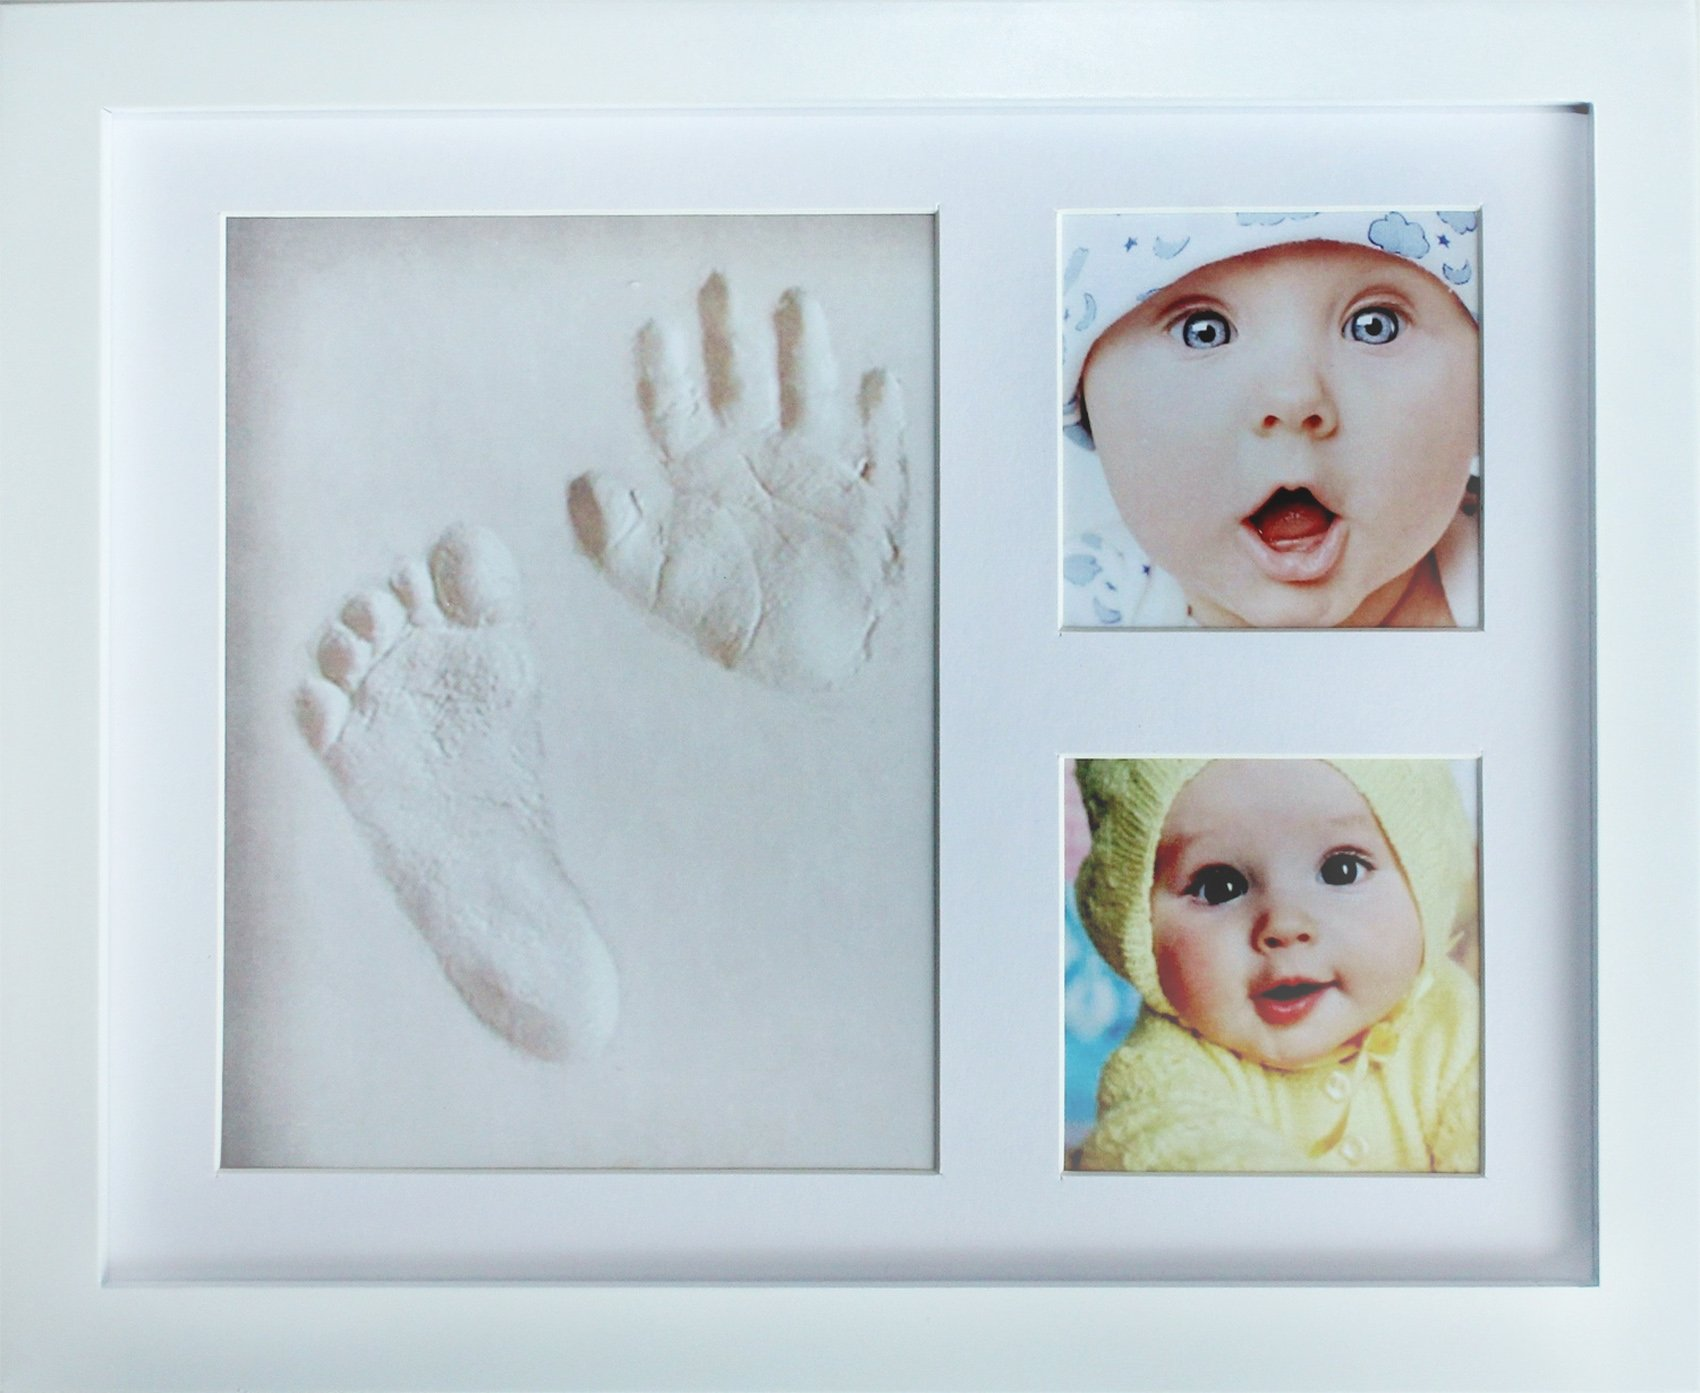 My Mini Moe Newborn Baby Handprint Kit & Footprint Photo Frame. Shower Registry Gifts for Girls & Boys Craft Clay Mold Gift Set for Babys Infant & Kids Personalized Nursery Decor Keepsake Box Ideas by My Mini Moe